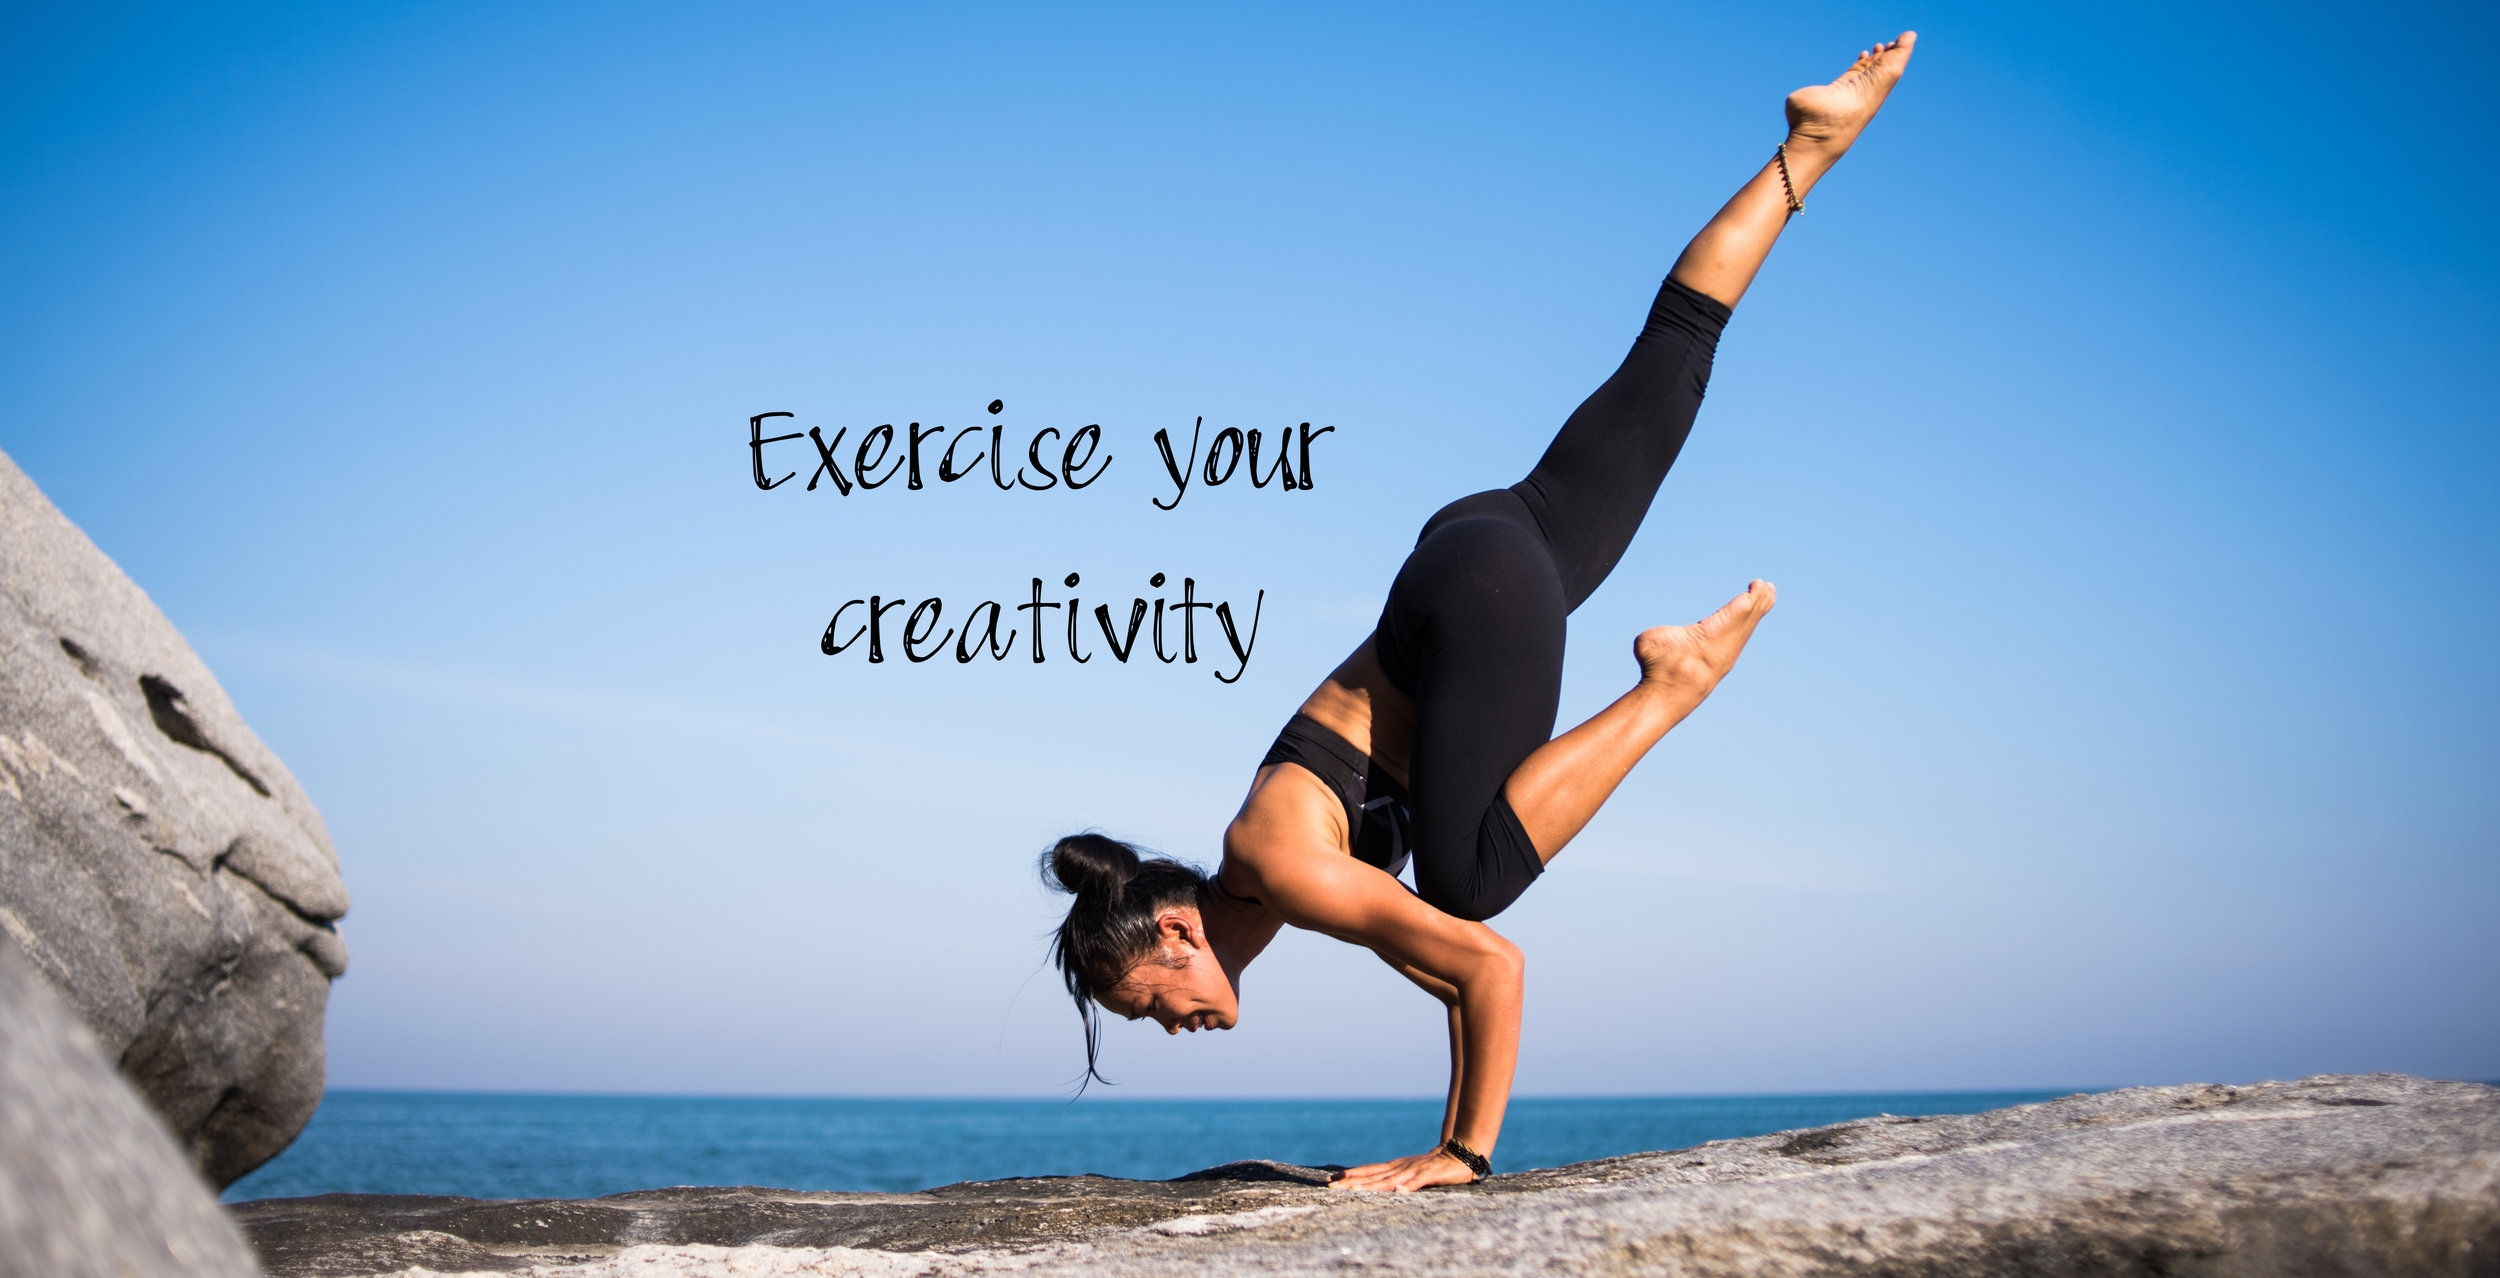 Exercise Creativity MEME.jpeg